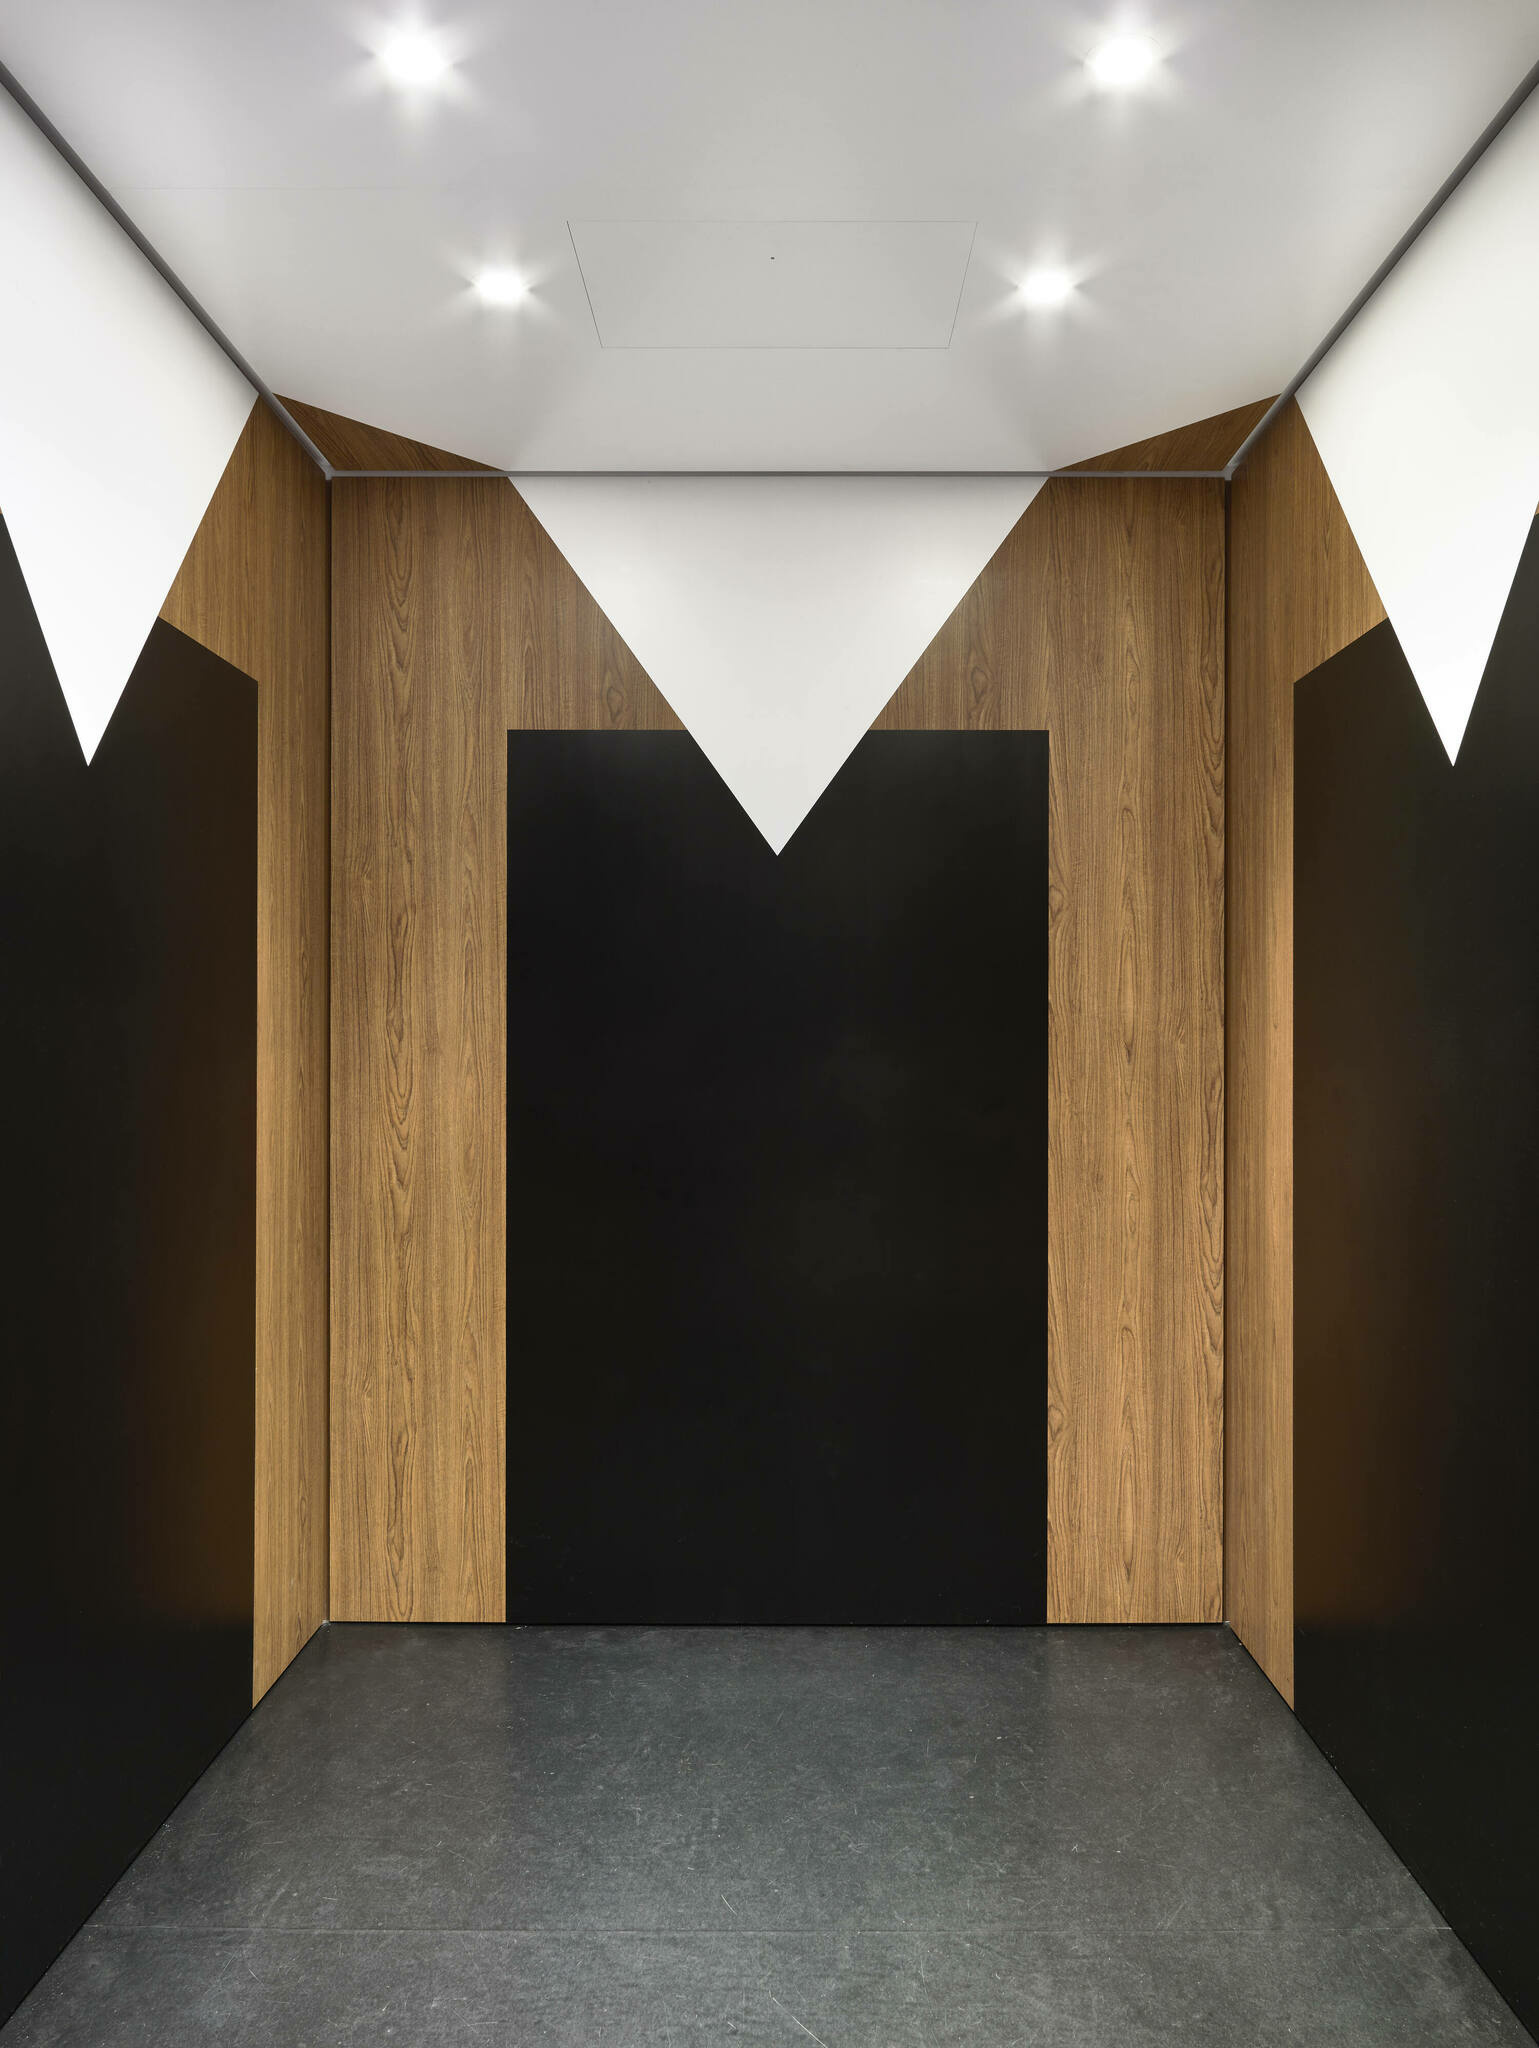 An elevator's interior with geometric wall designs resembling the underside of a table, wood-like columns in the corners for table legs and a white diamond predominating the ceiling for the table cloth